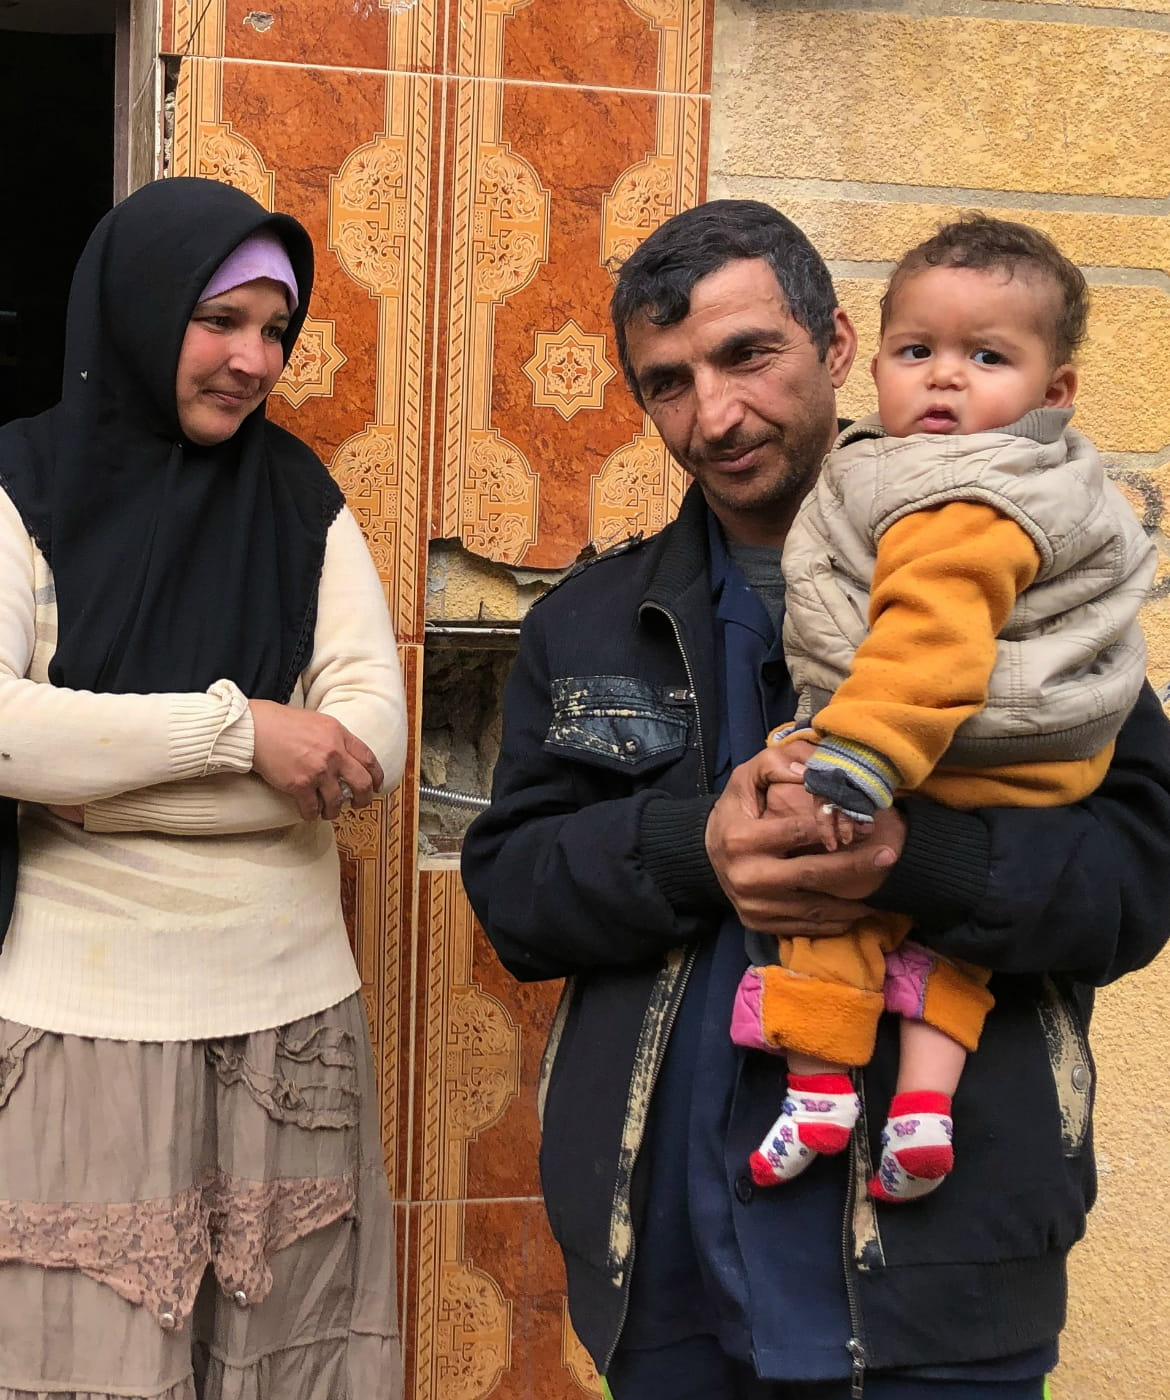 Sobhi and his wife Fatoum, with their one-year-old son, Sharif, outside their small home in Aleppo.